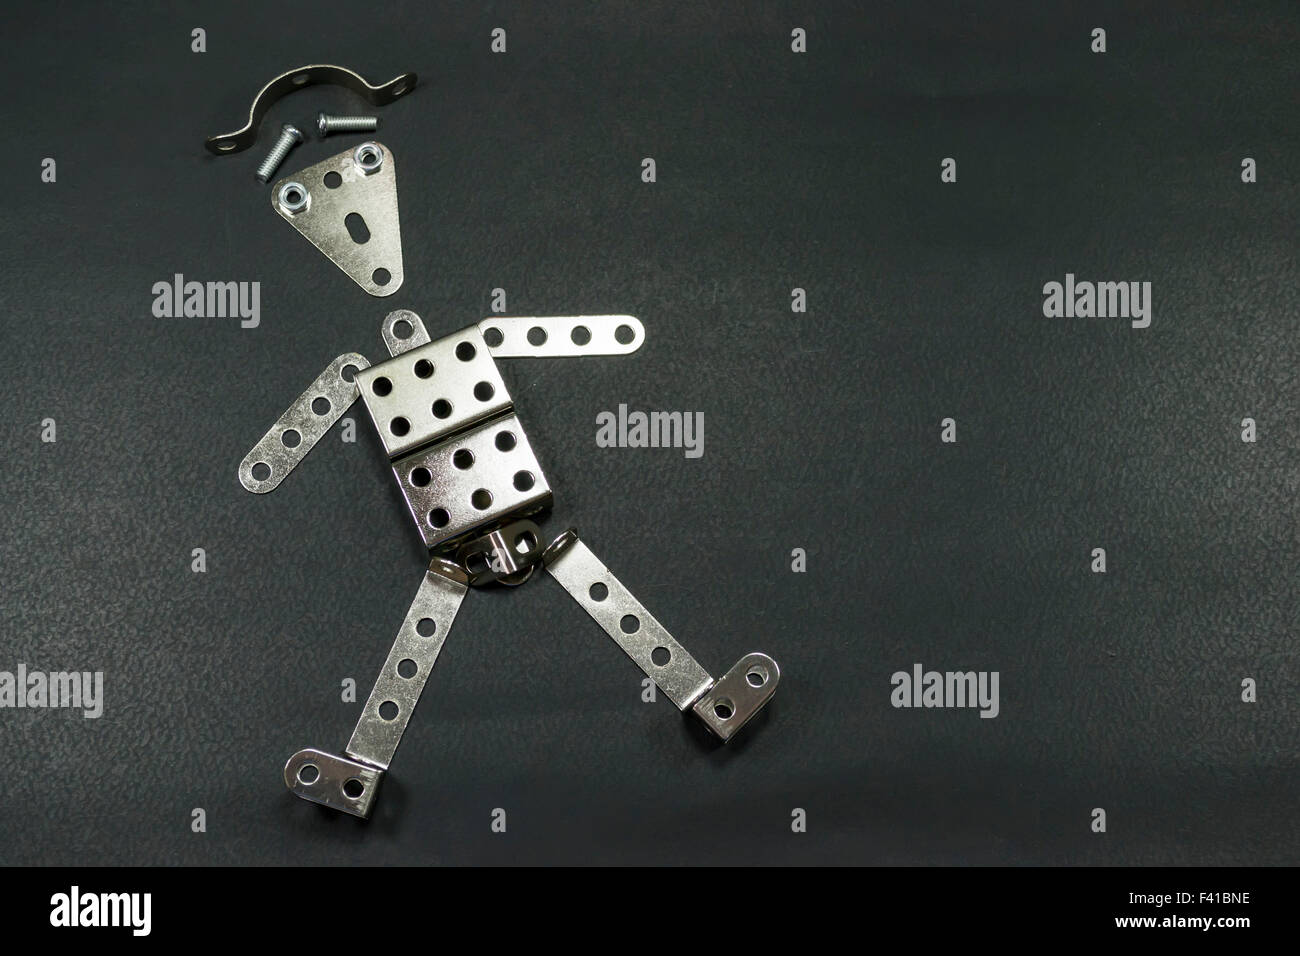 Perforated metallic plates arranged in the form of a funny robot or tin man , against a black background - Stock Image